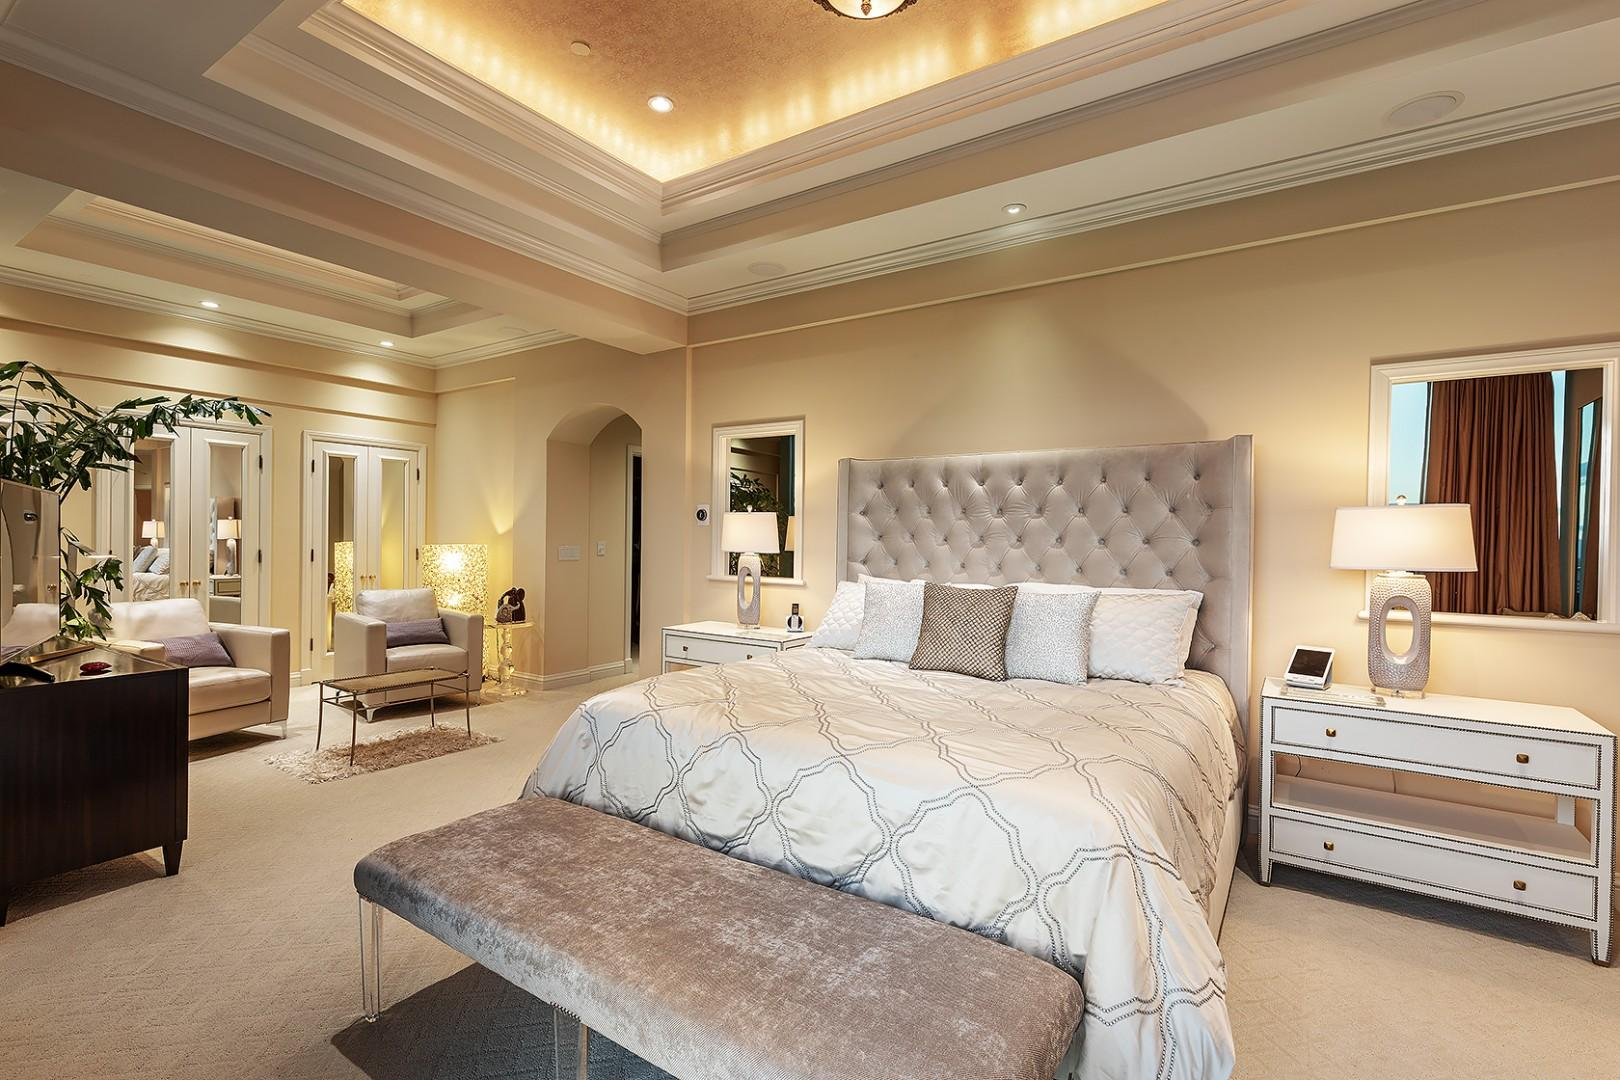 Master Bedroom, King Size Bed and Ample Closet Space